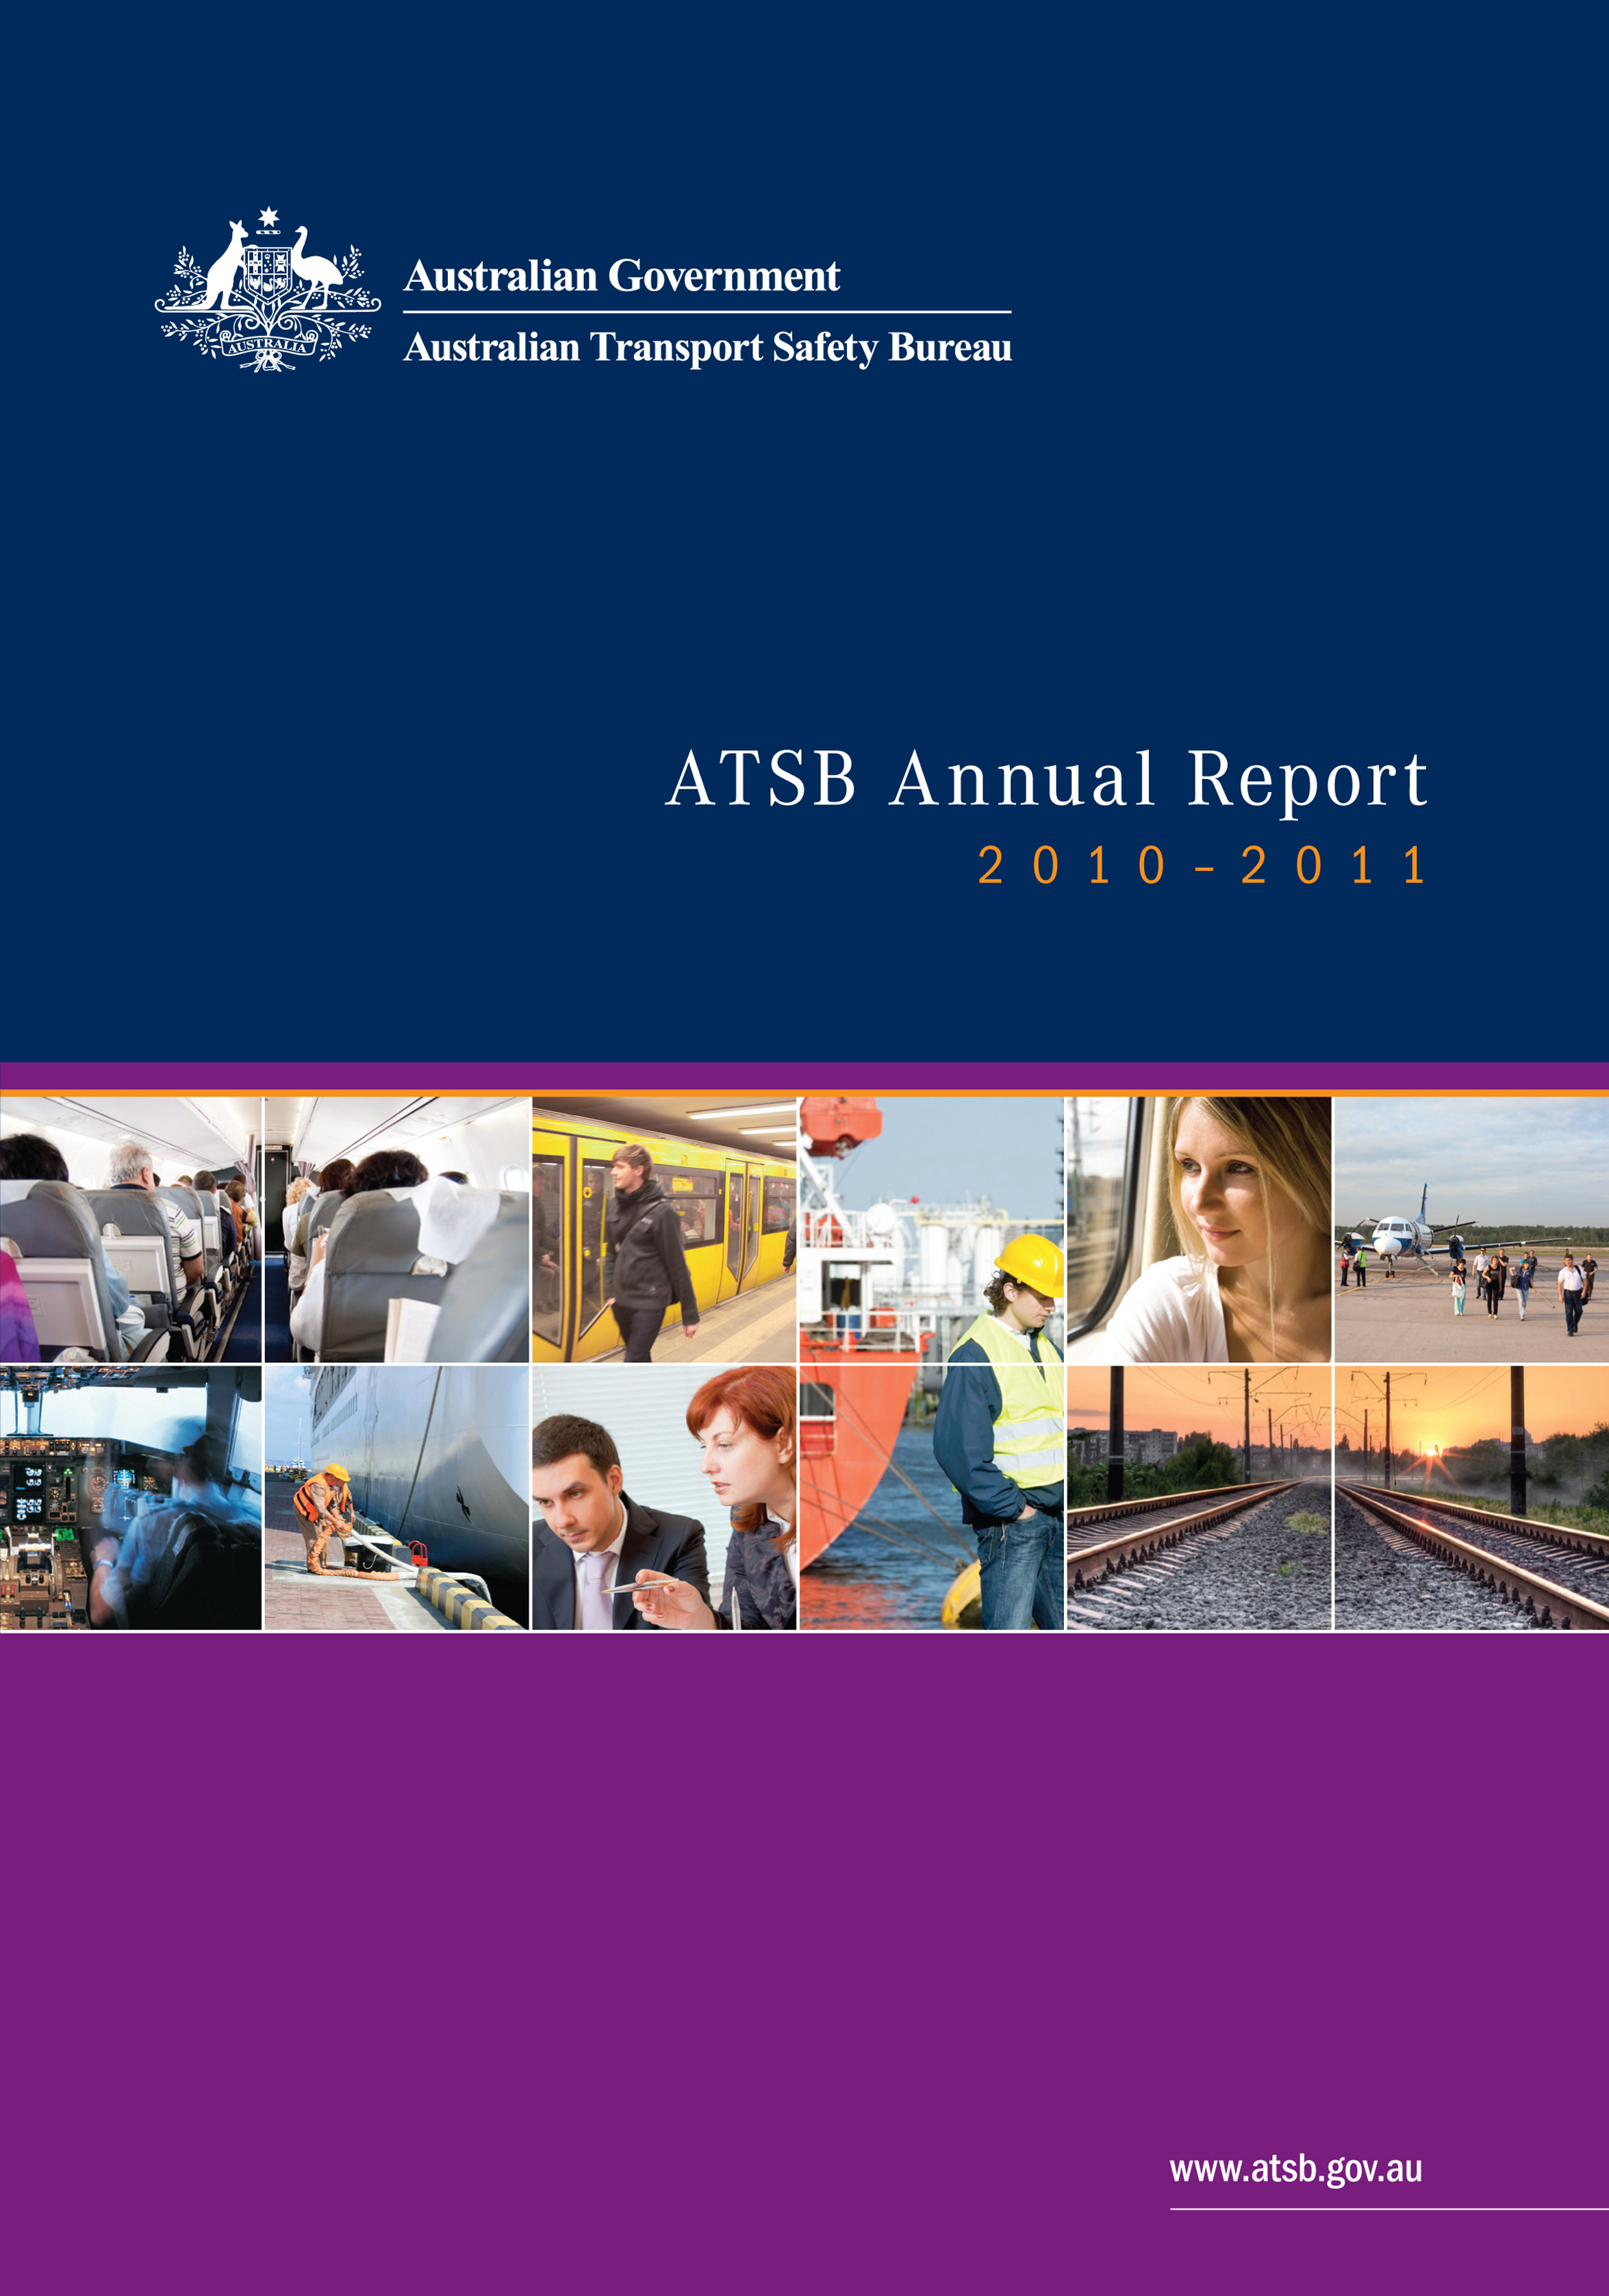 Download complete document - ATSB Annual Report 2010-2011